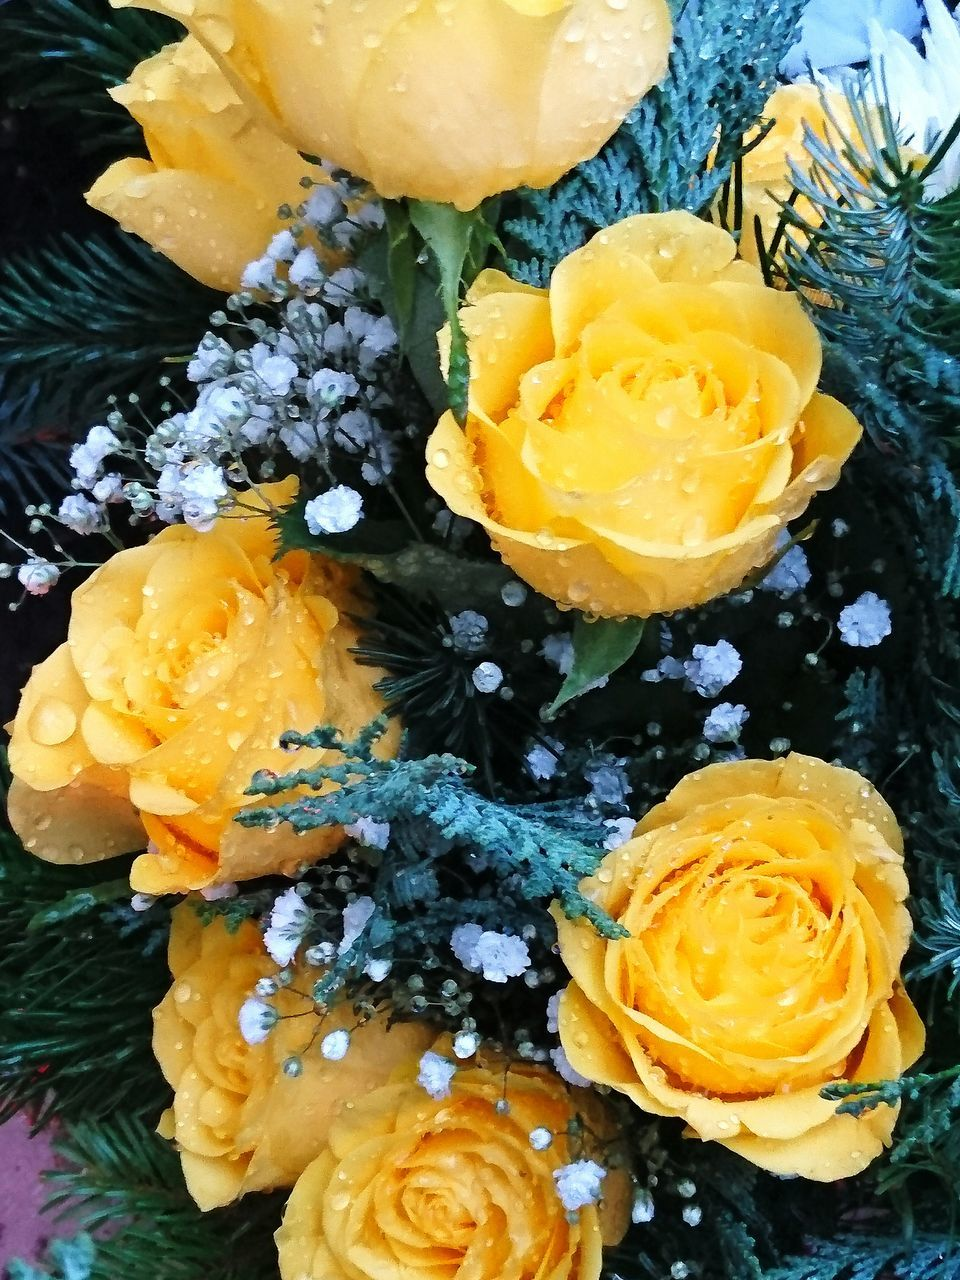 freshness, food and drink, food, flower, close-up, yellow, sweet food, no people, beauty in nature, dessert, indoors, fragility, flower head, ready-to-eat, day